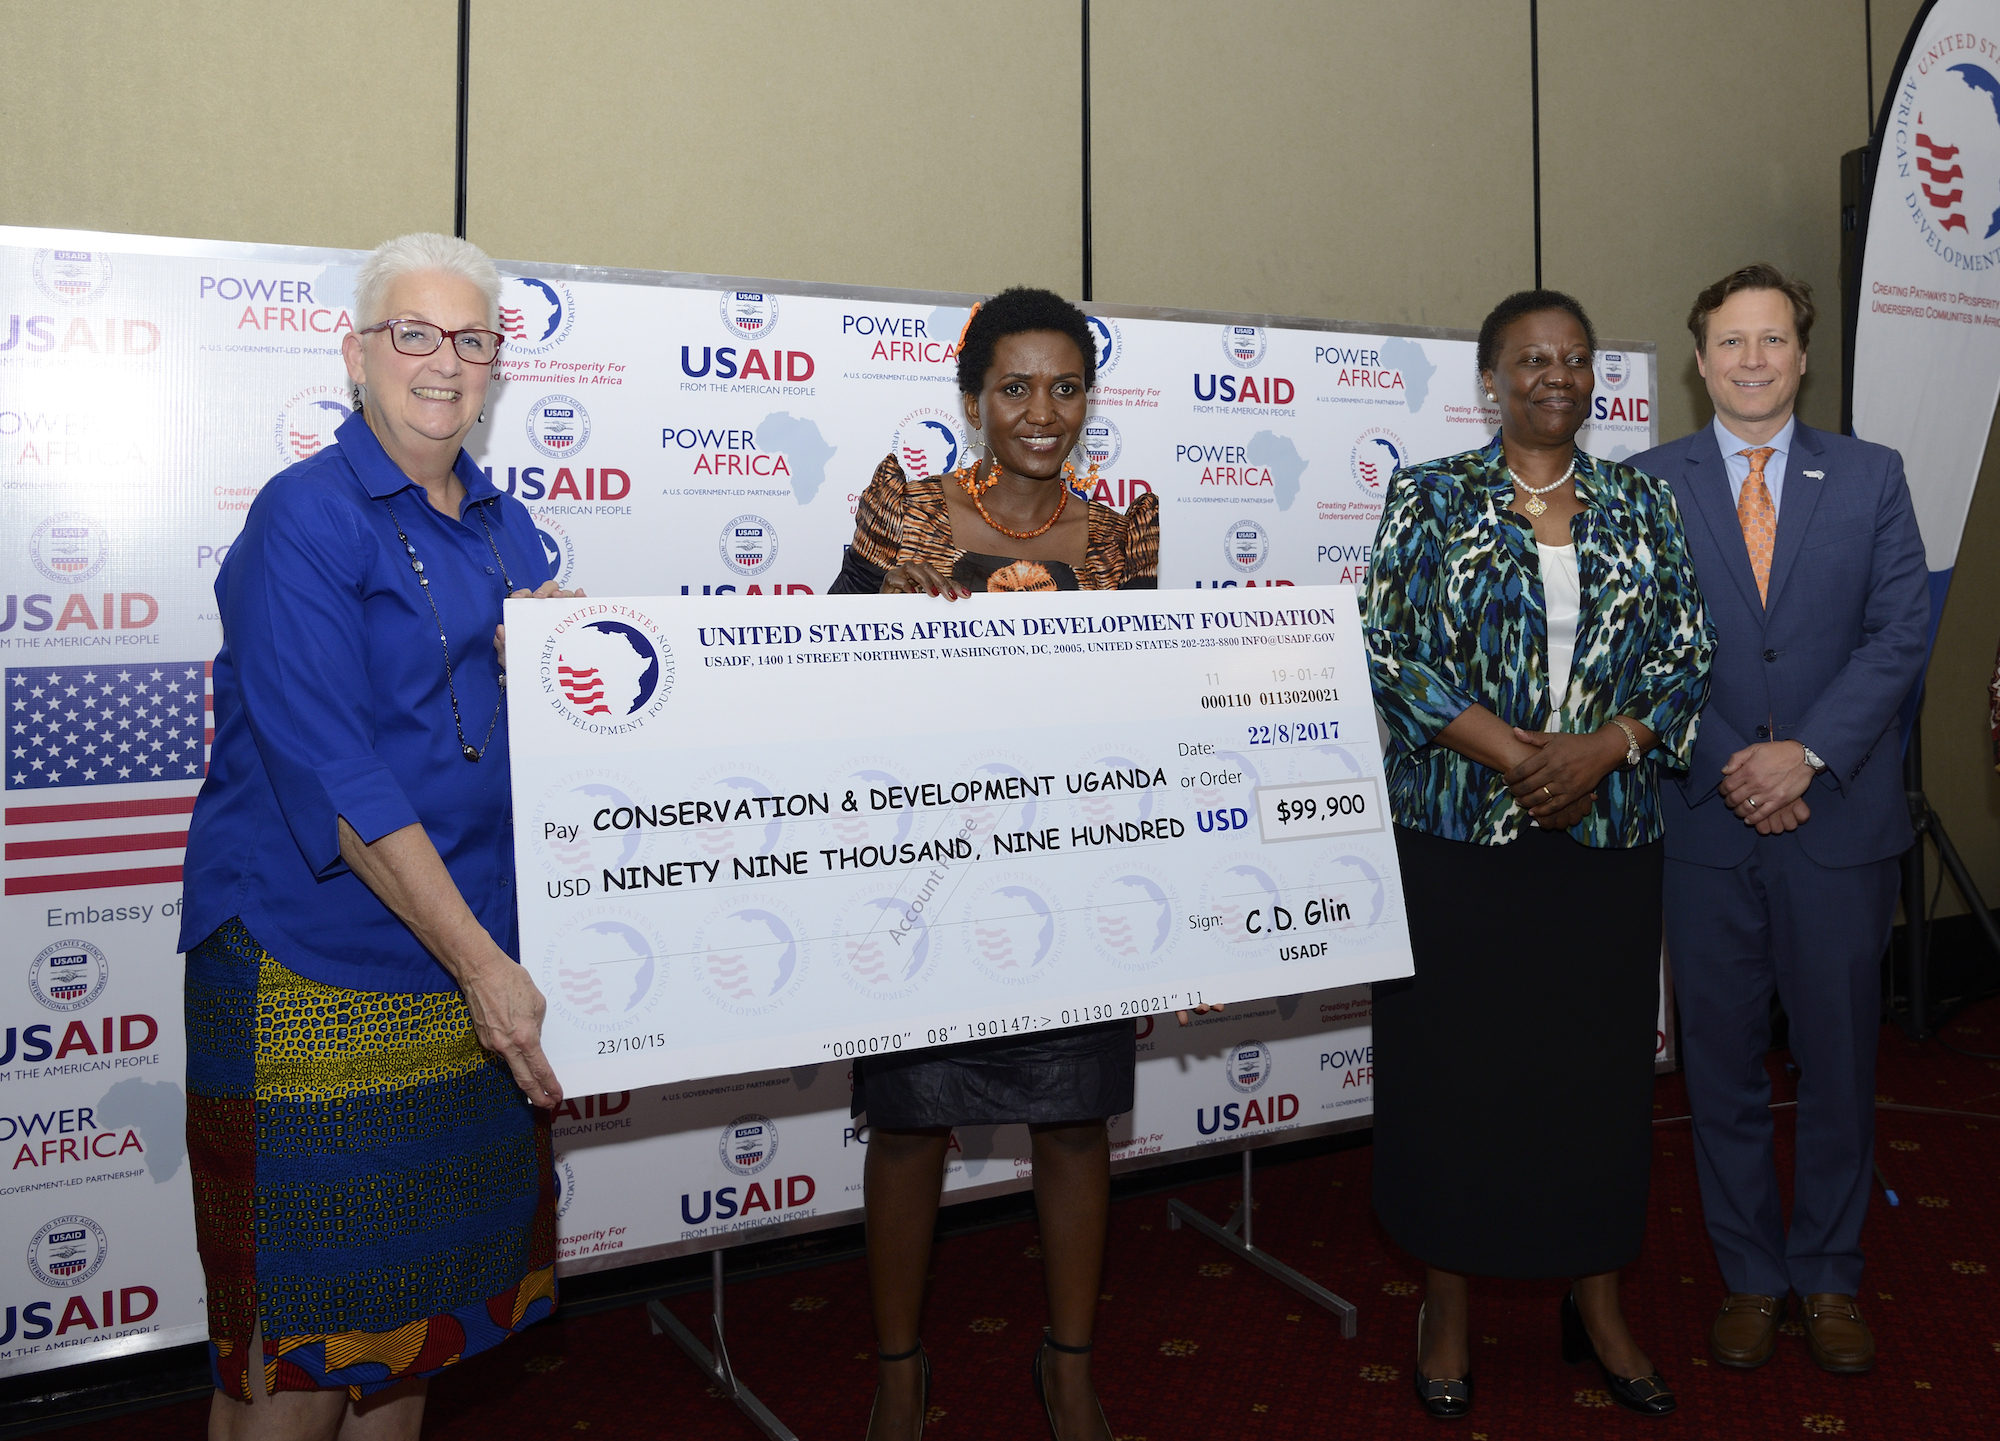 Ambassador Malac, Power Africa Coordinator Andrew Herscowitz   and Hon. Irene Muloni, Minister of Energy and Mineral Development, award   Eseza Musoki,  CEO of CODE Uganda .    USADF, a Power Africa partner, awarded 2 grants to women-owned energy enterprises in Uganda in August 2017.